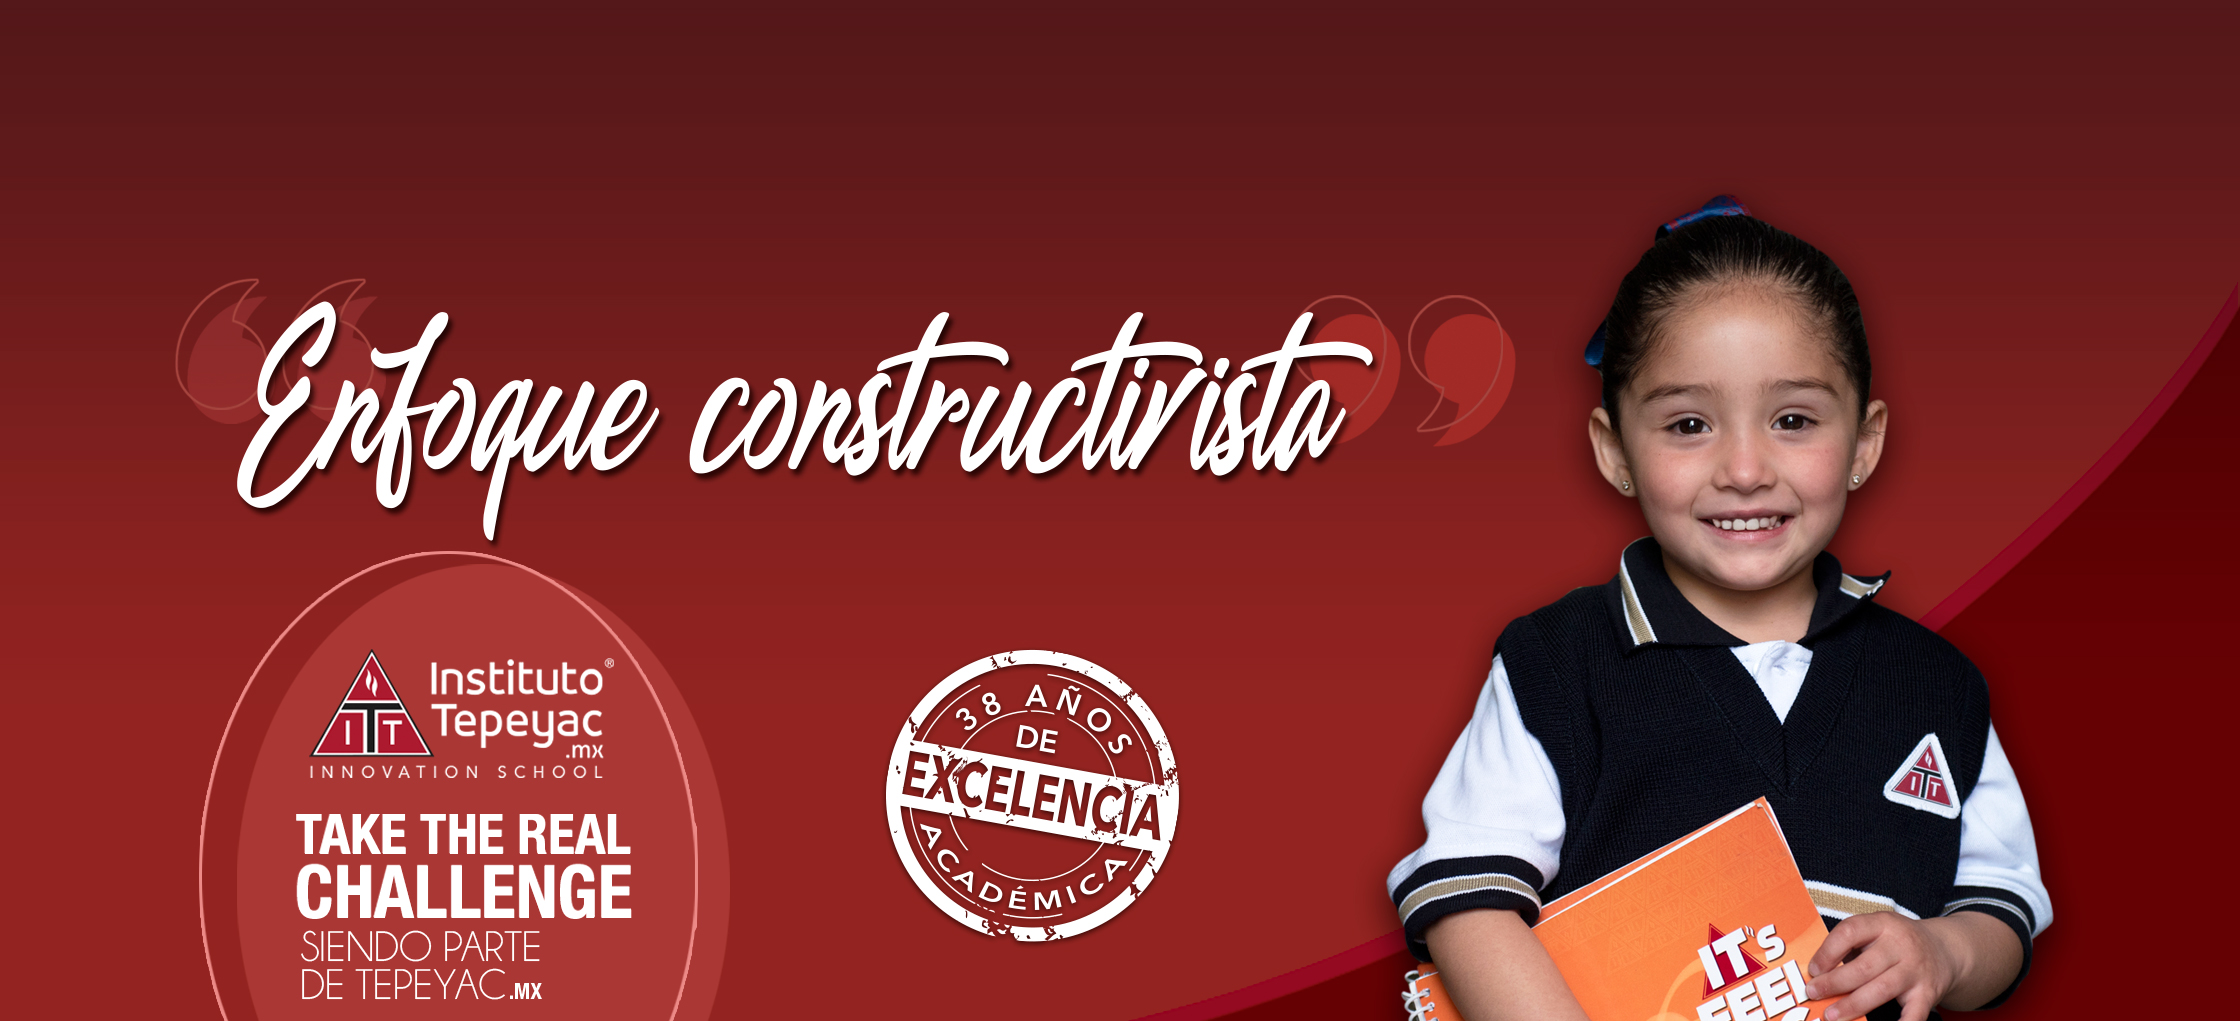 Instituto Tepeyac RED IT